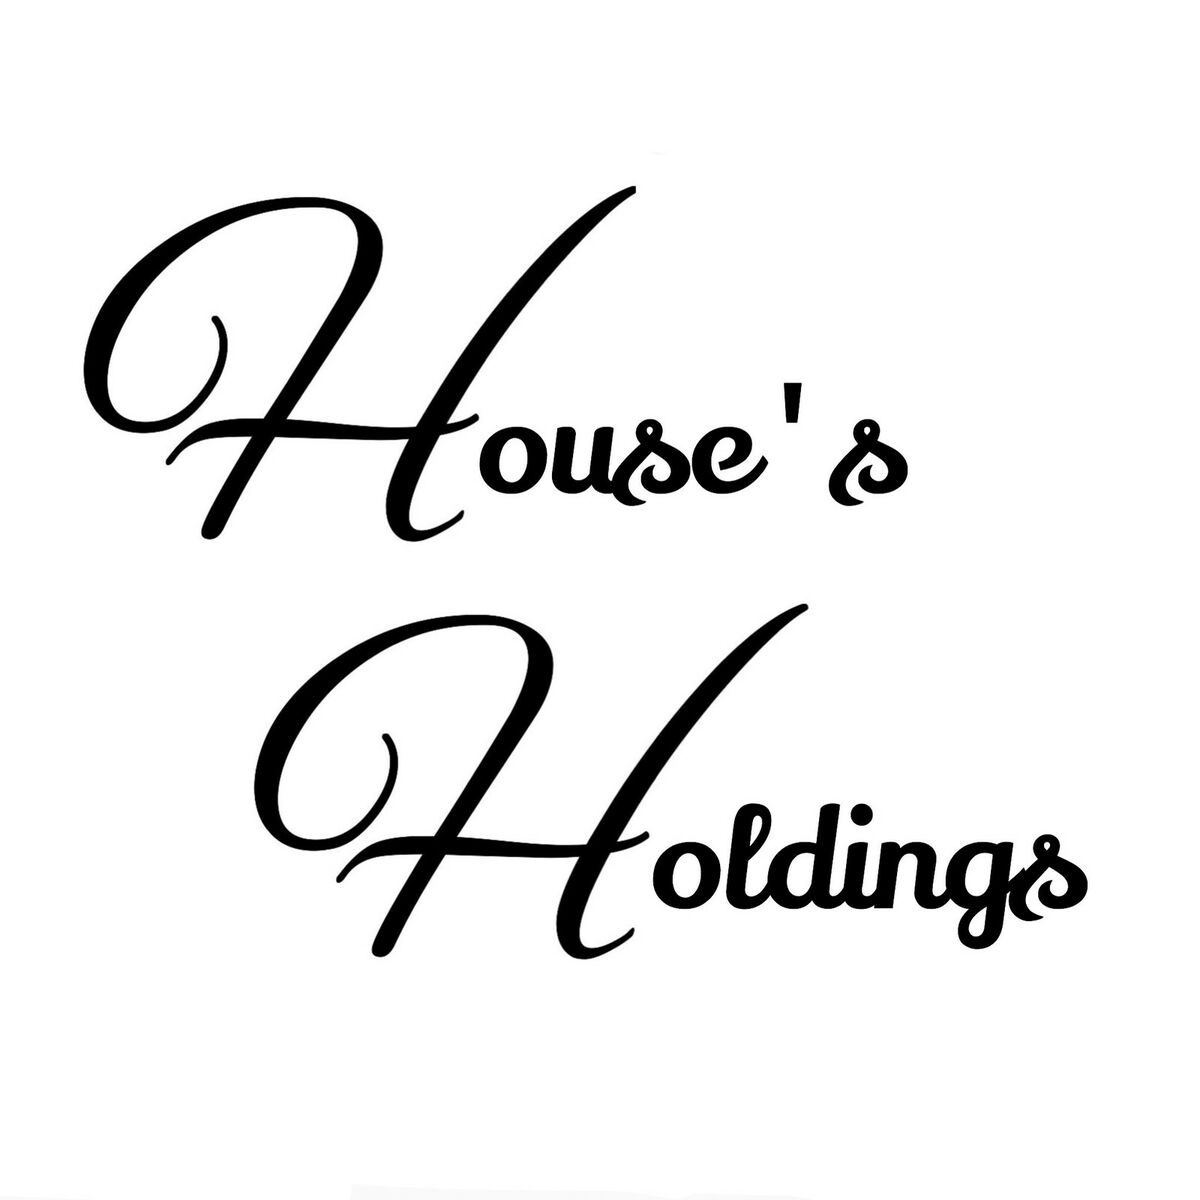 houses holdings